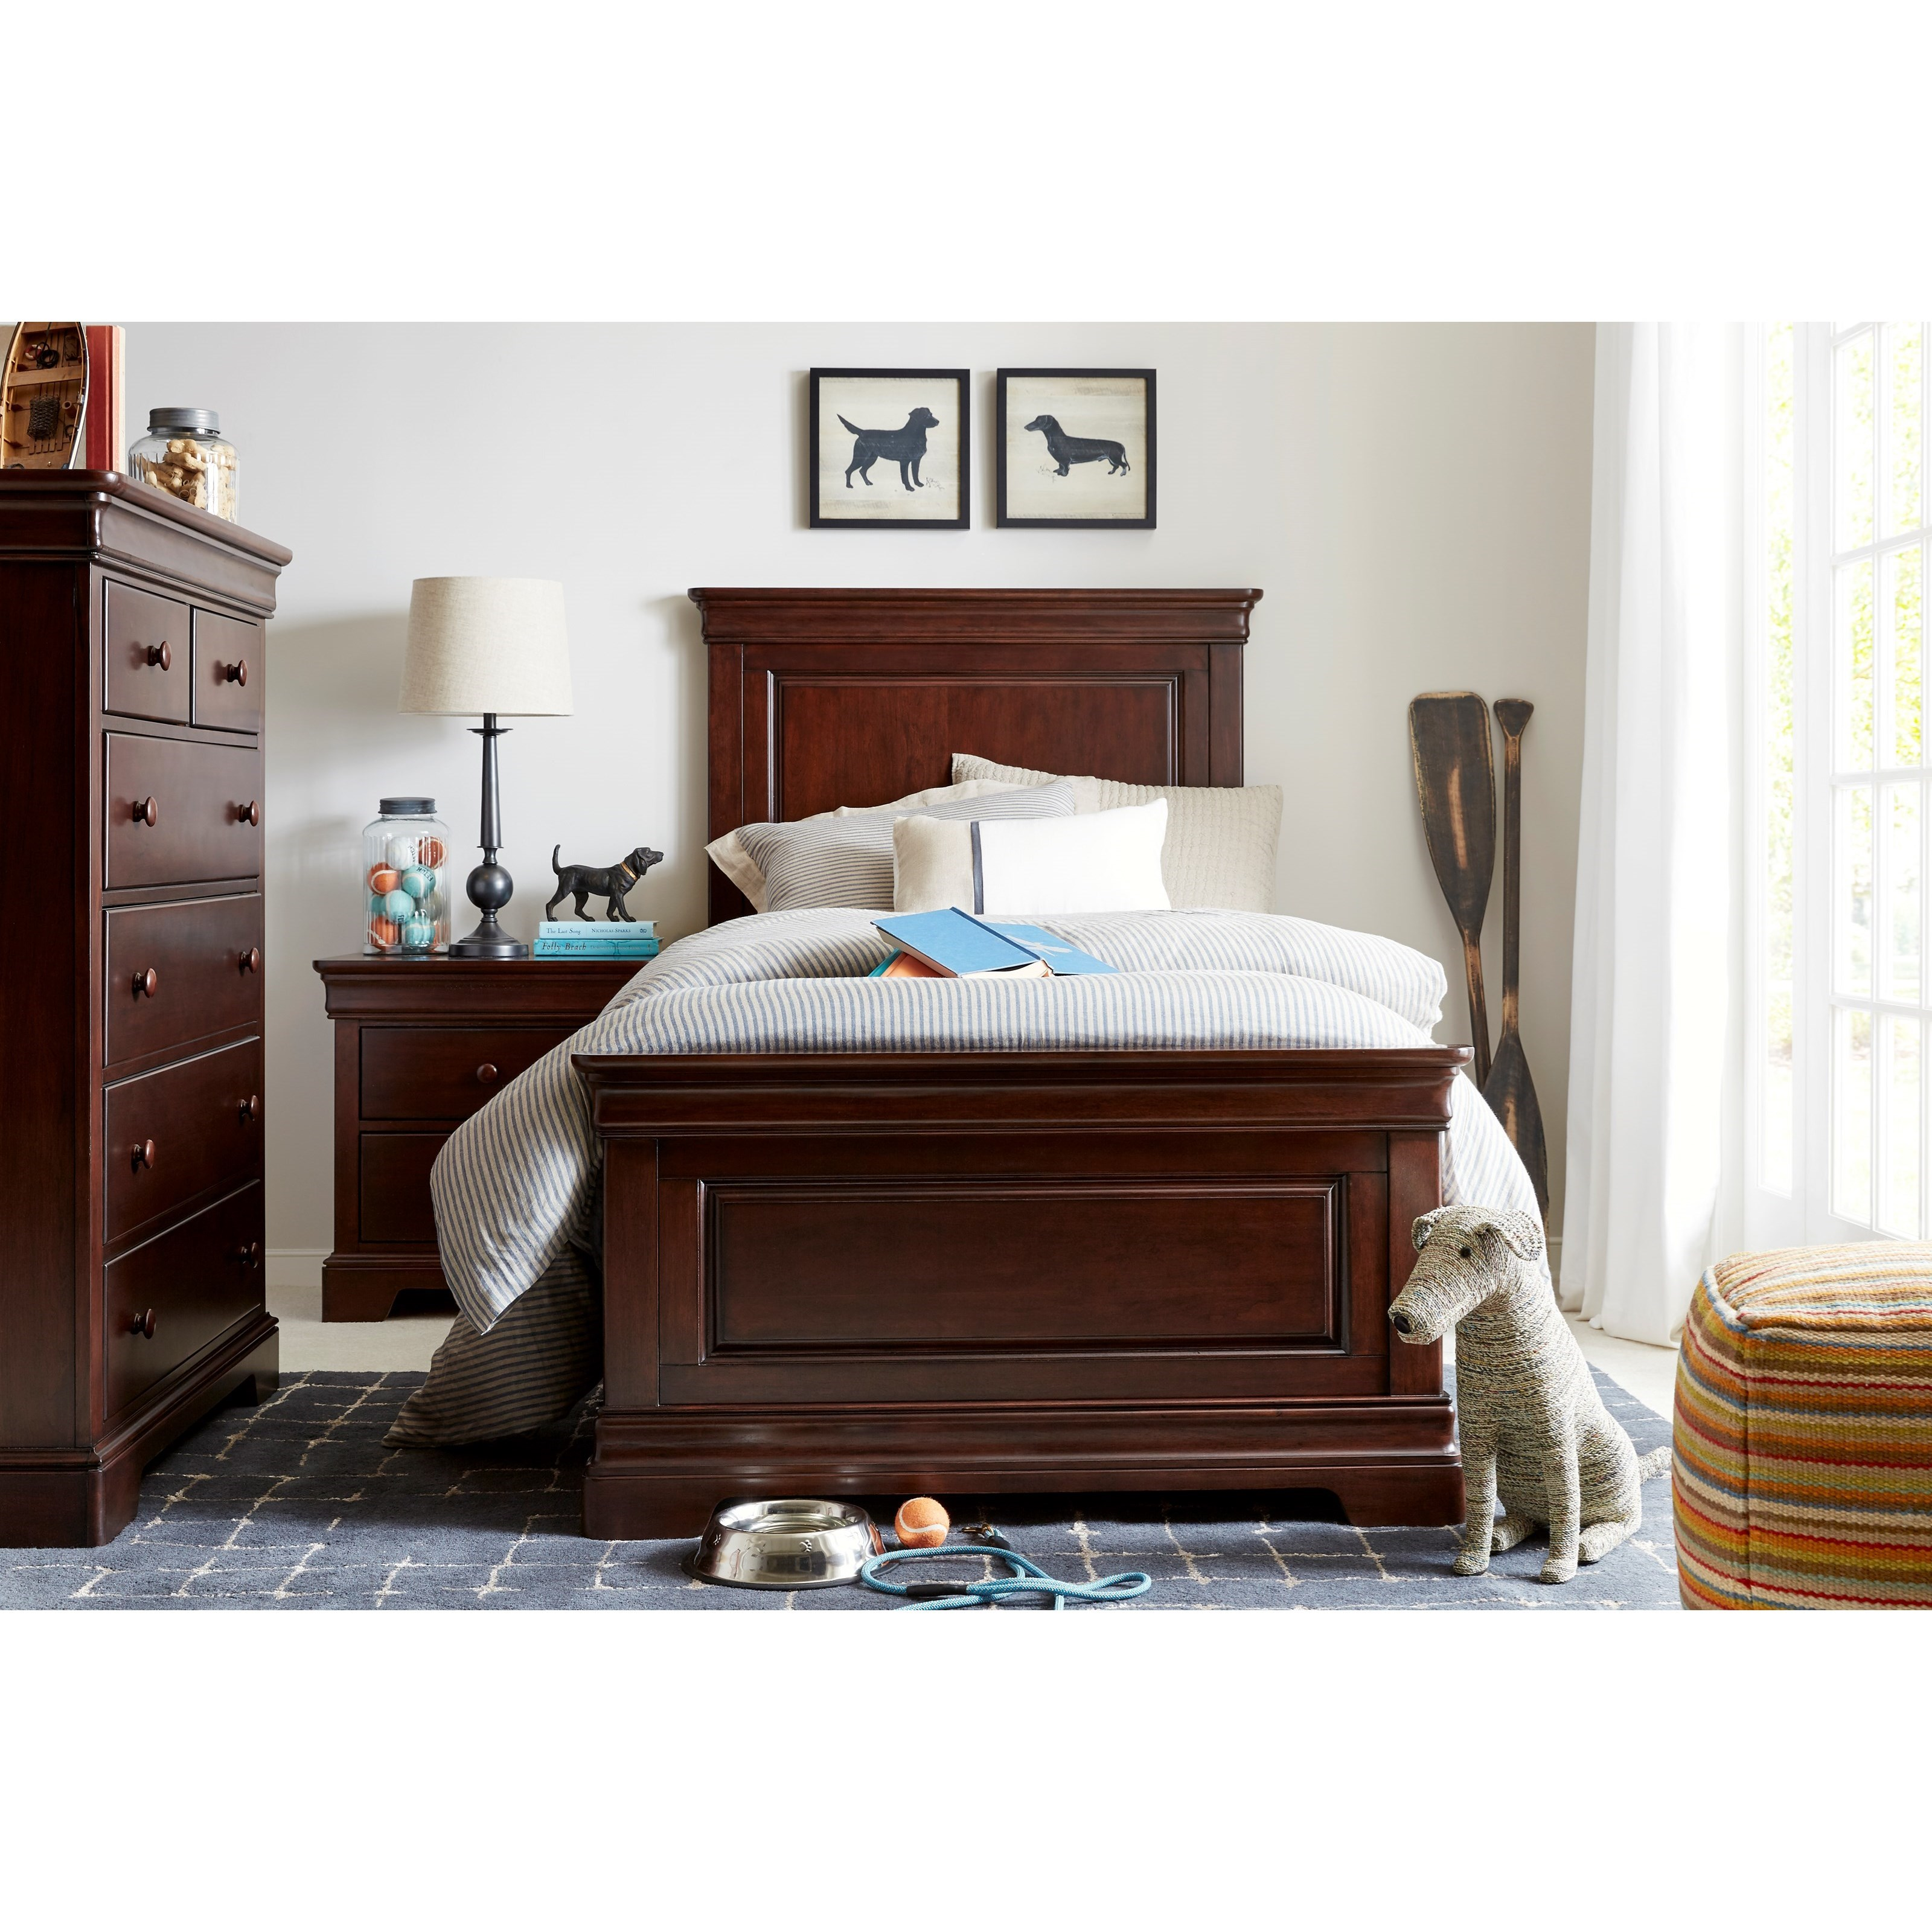 Stone & Leigh Furniture Teaberry Lane Queen Bedroom Group - Item Number: 575-13 Q Bedroom Group 1